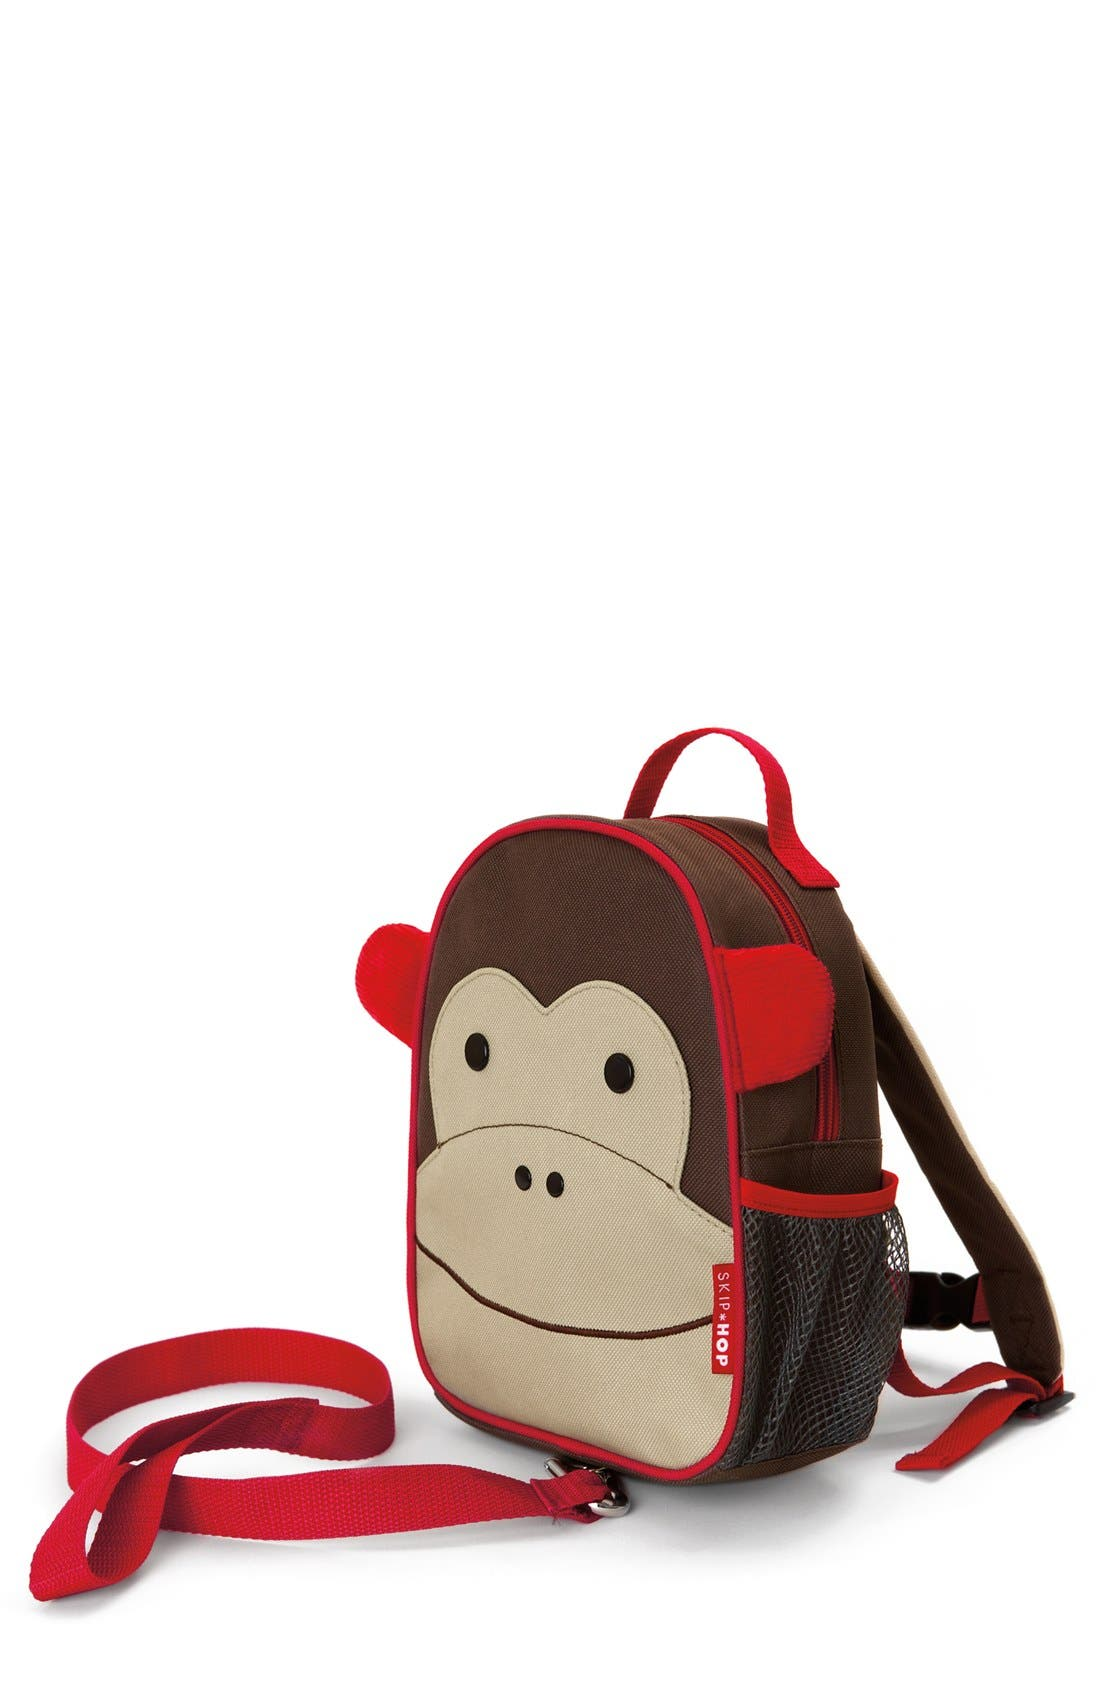 'Zoo' Safety Harness Backpack,                         Main,                         color, Brown